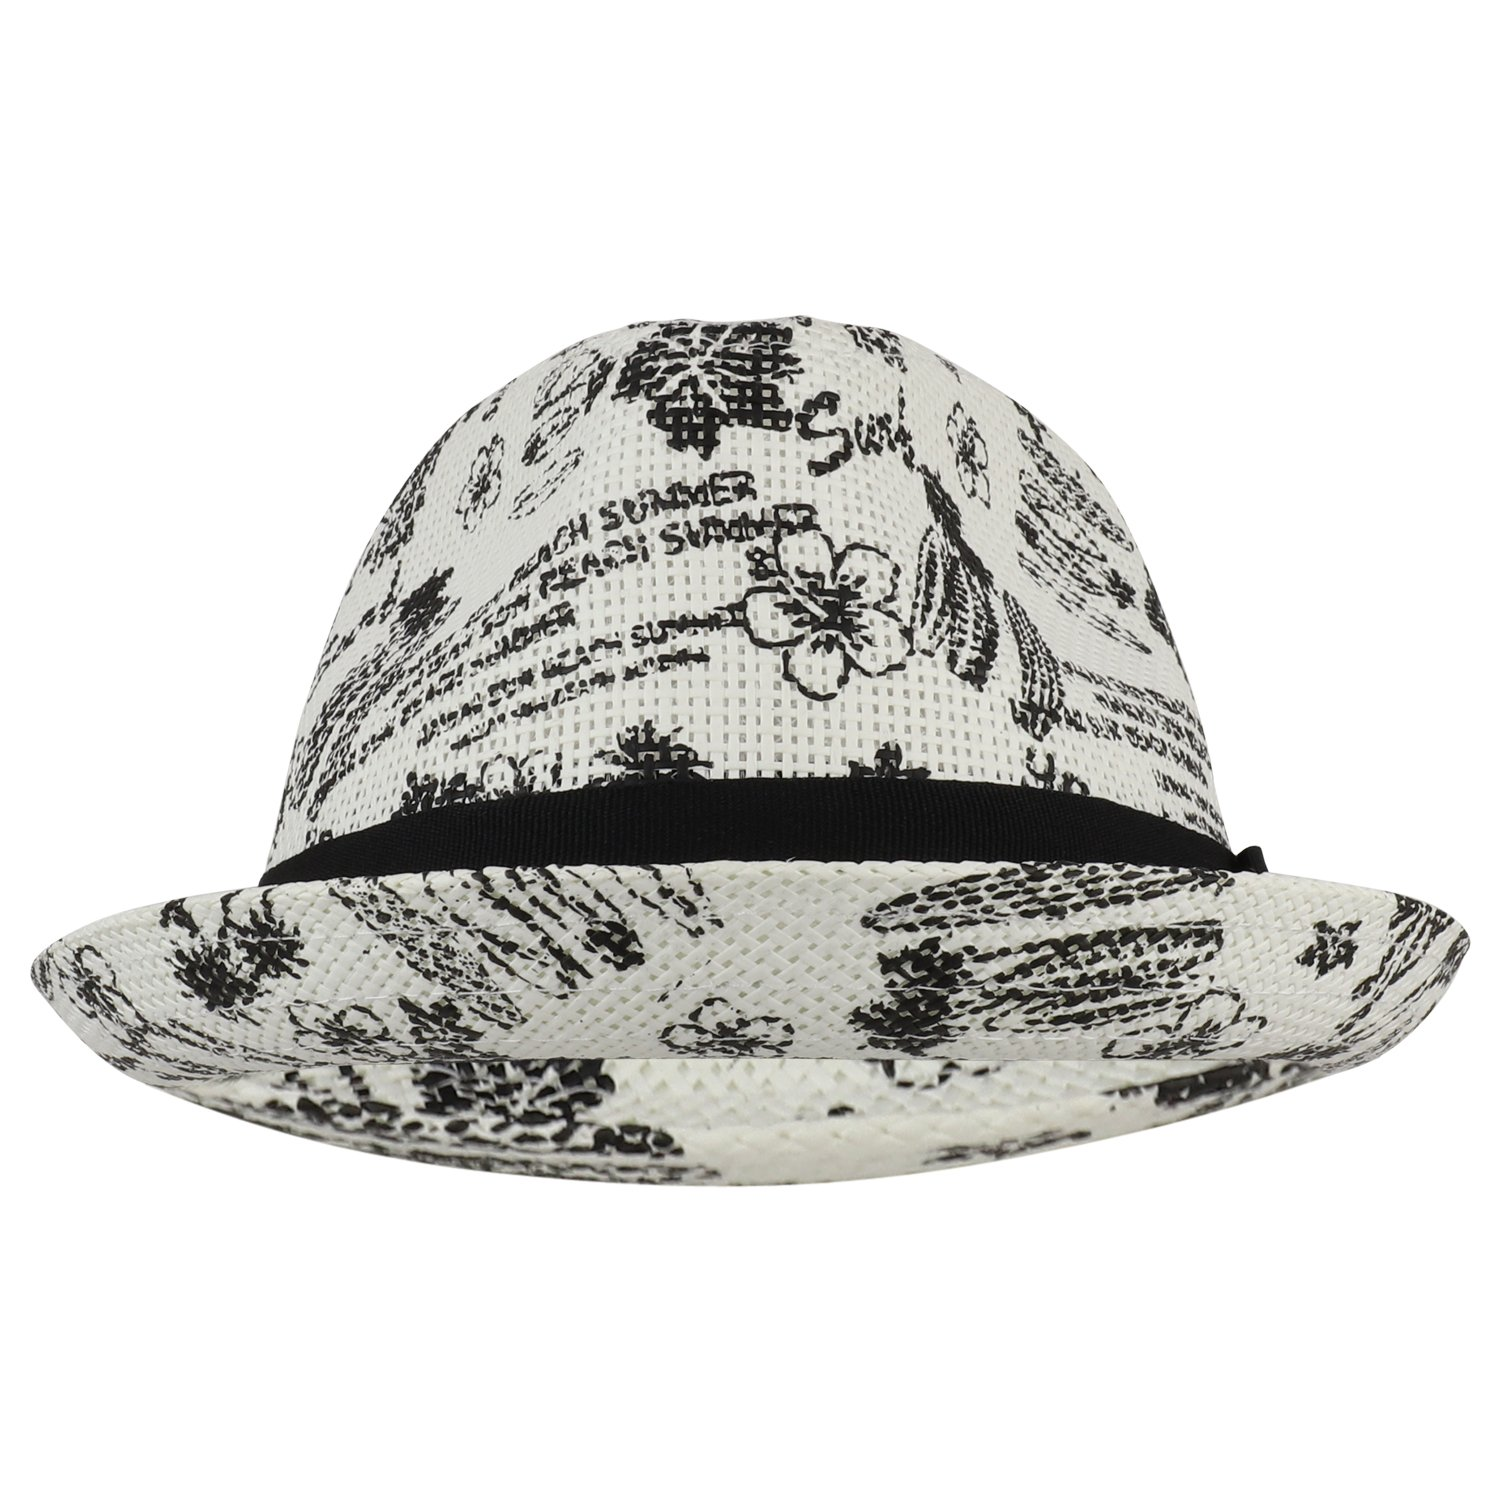 Trendy Apparel Shop Tropical Beach Printed Straw Fedora Hat